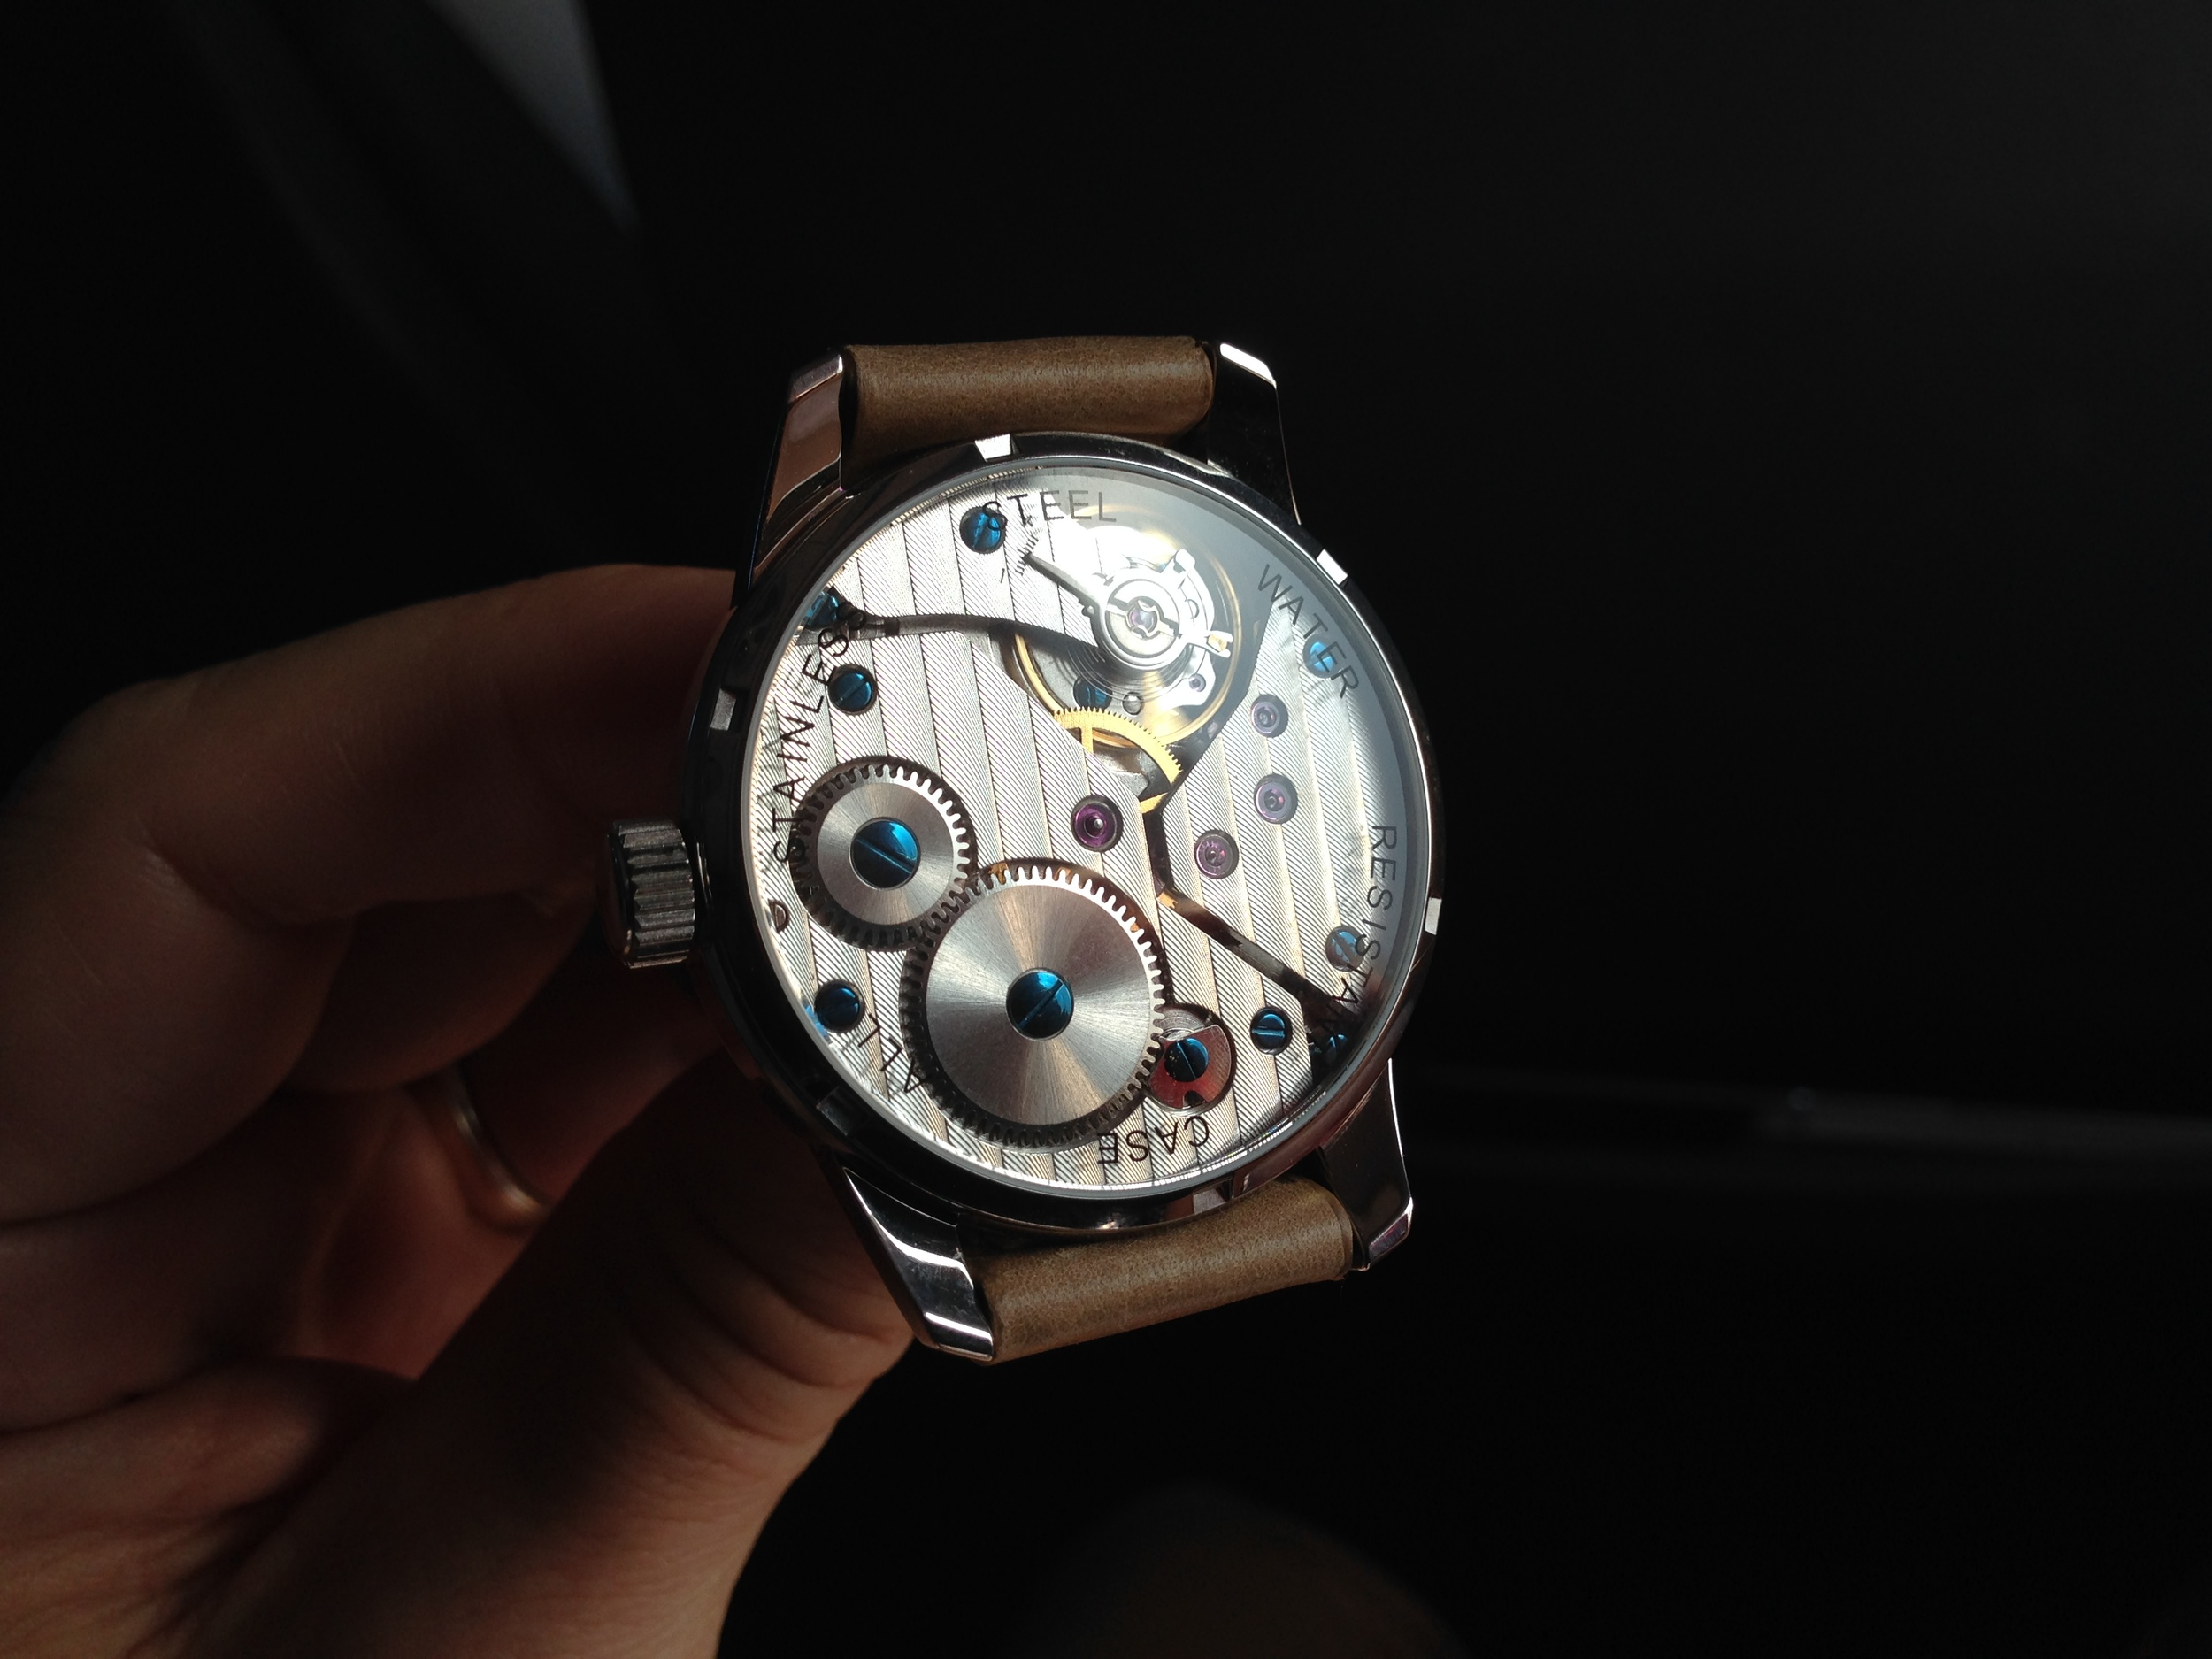 The beating heart of our watches